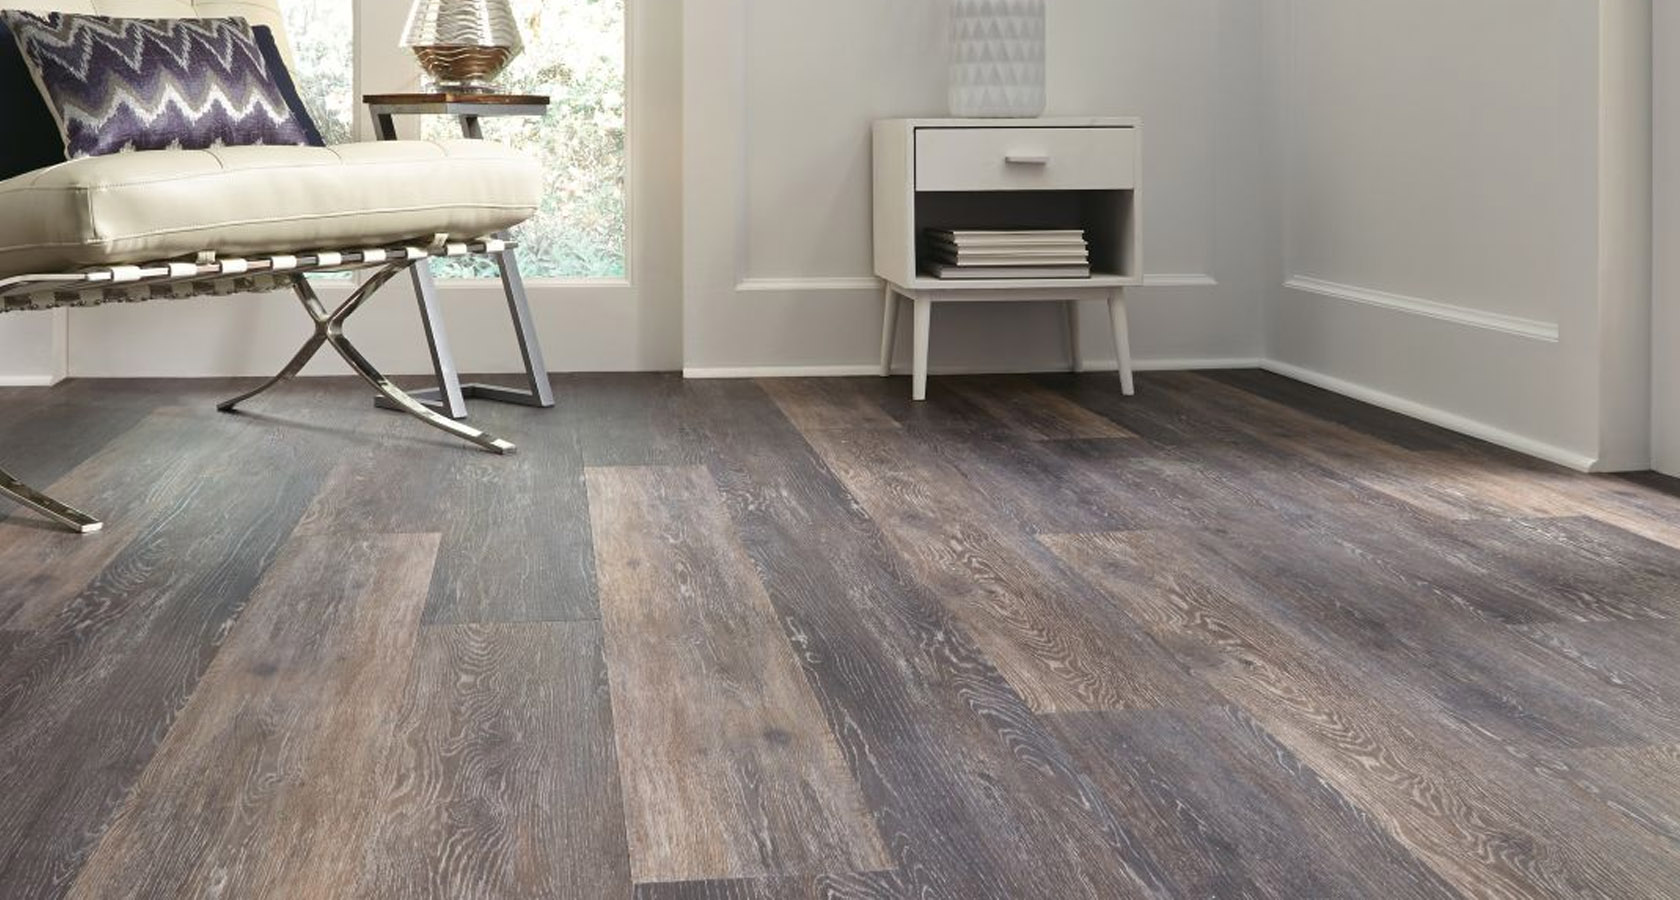 Dane Bank Flooring